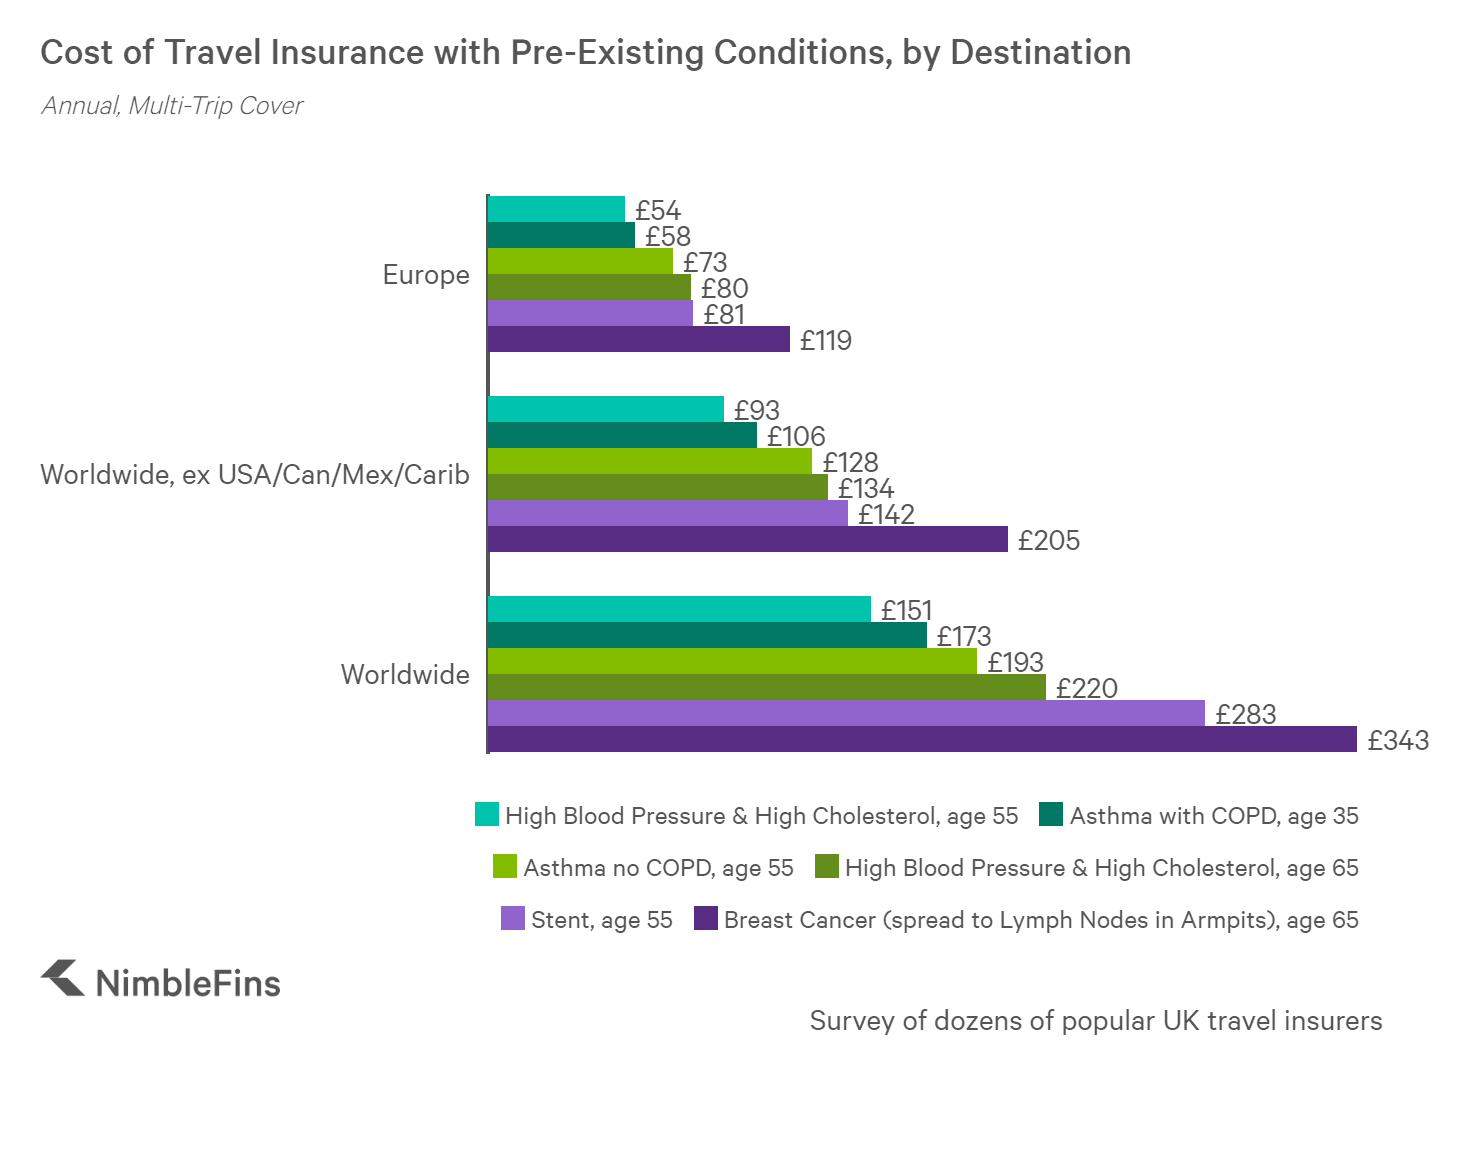 chart showing cost of travel insurance for pre-existing medical conditions in Europe and Worldwide for: high blood pressure, high cholesterol, breast cancer, asthma and stent